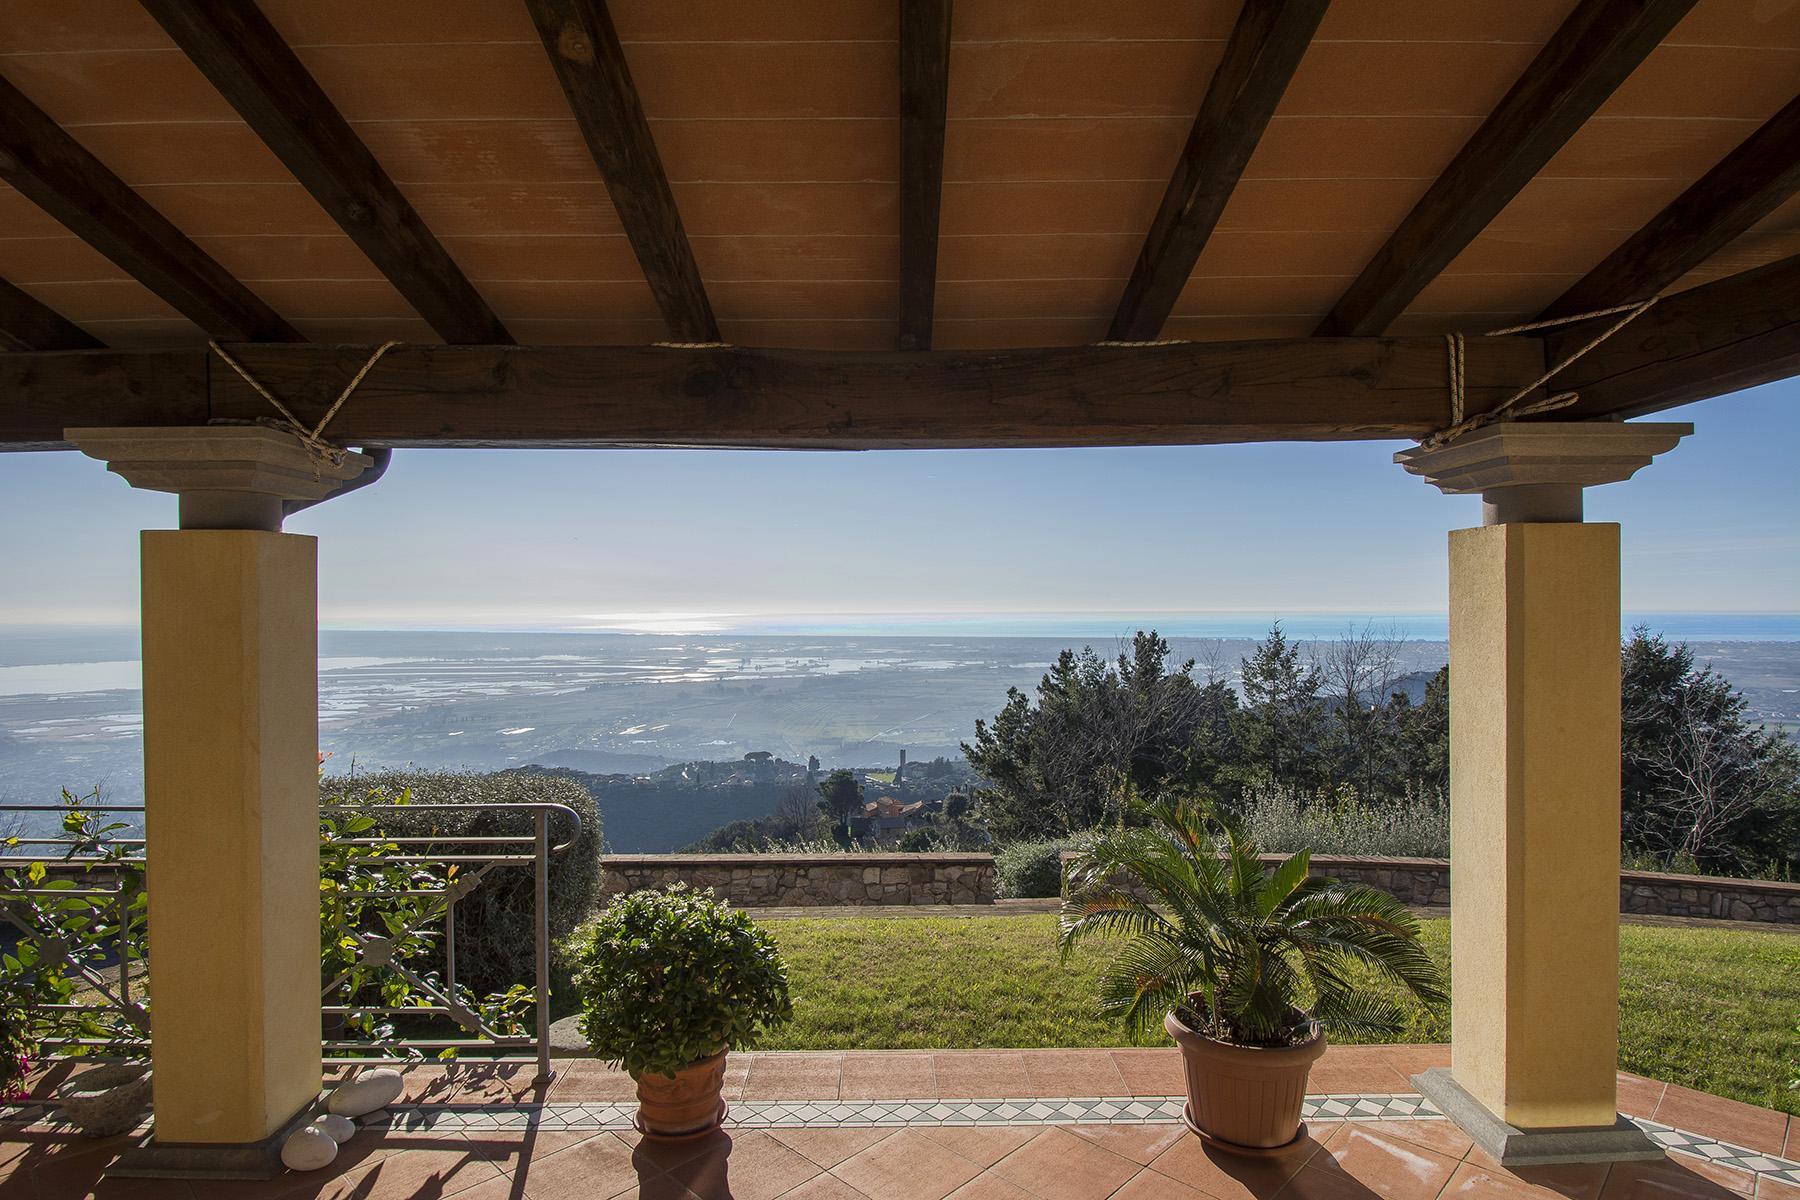 Hilltop sea-view villa overlooking the Versilia coastline and lake Massaciuccoli - 3